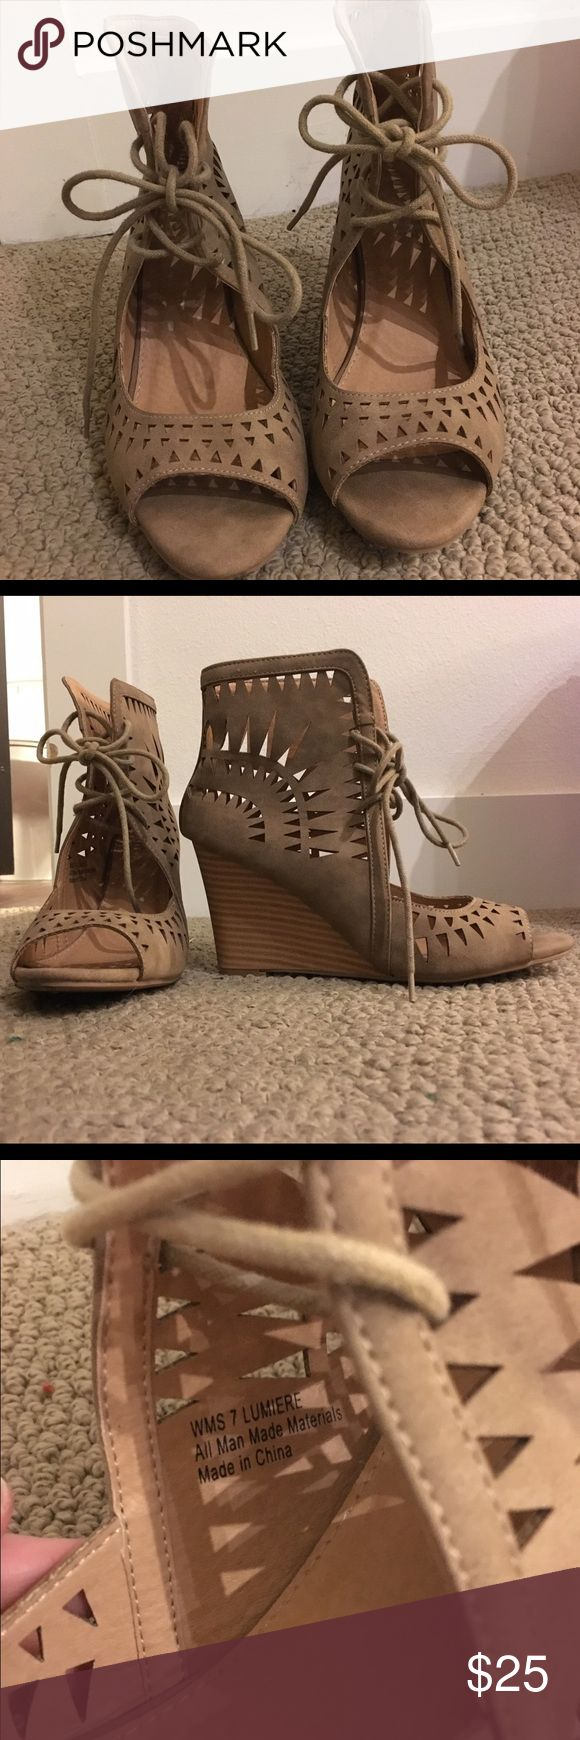 Tan/Camel lace up wedges Worn 1-2 times max. Size 7. Great condition! Report Shoes Wedges